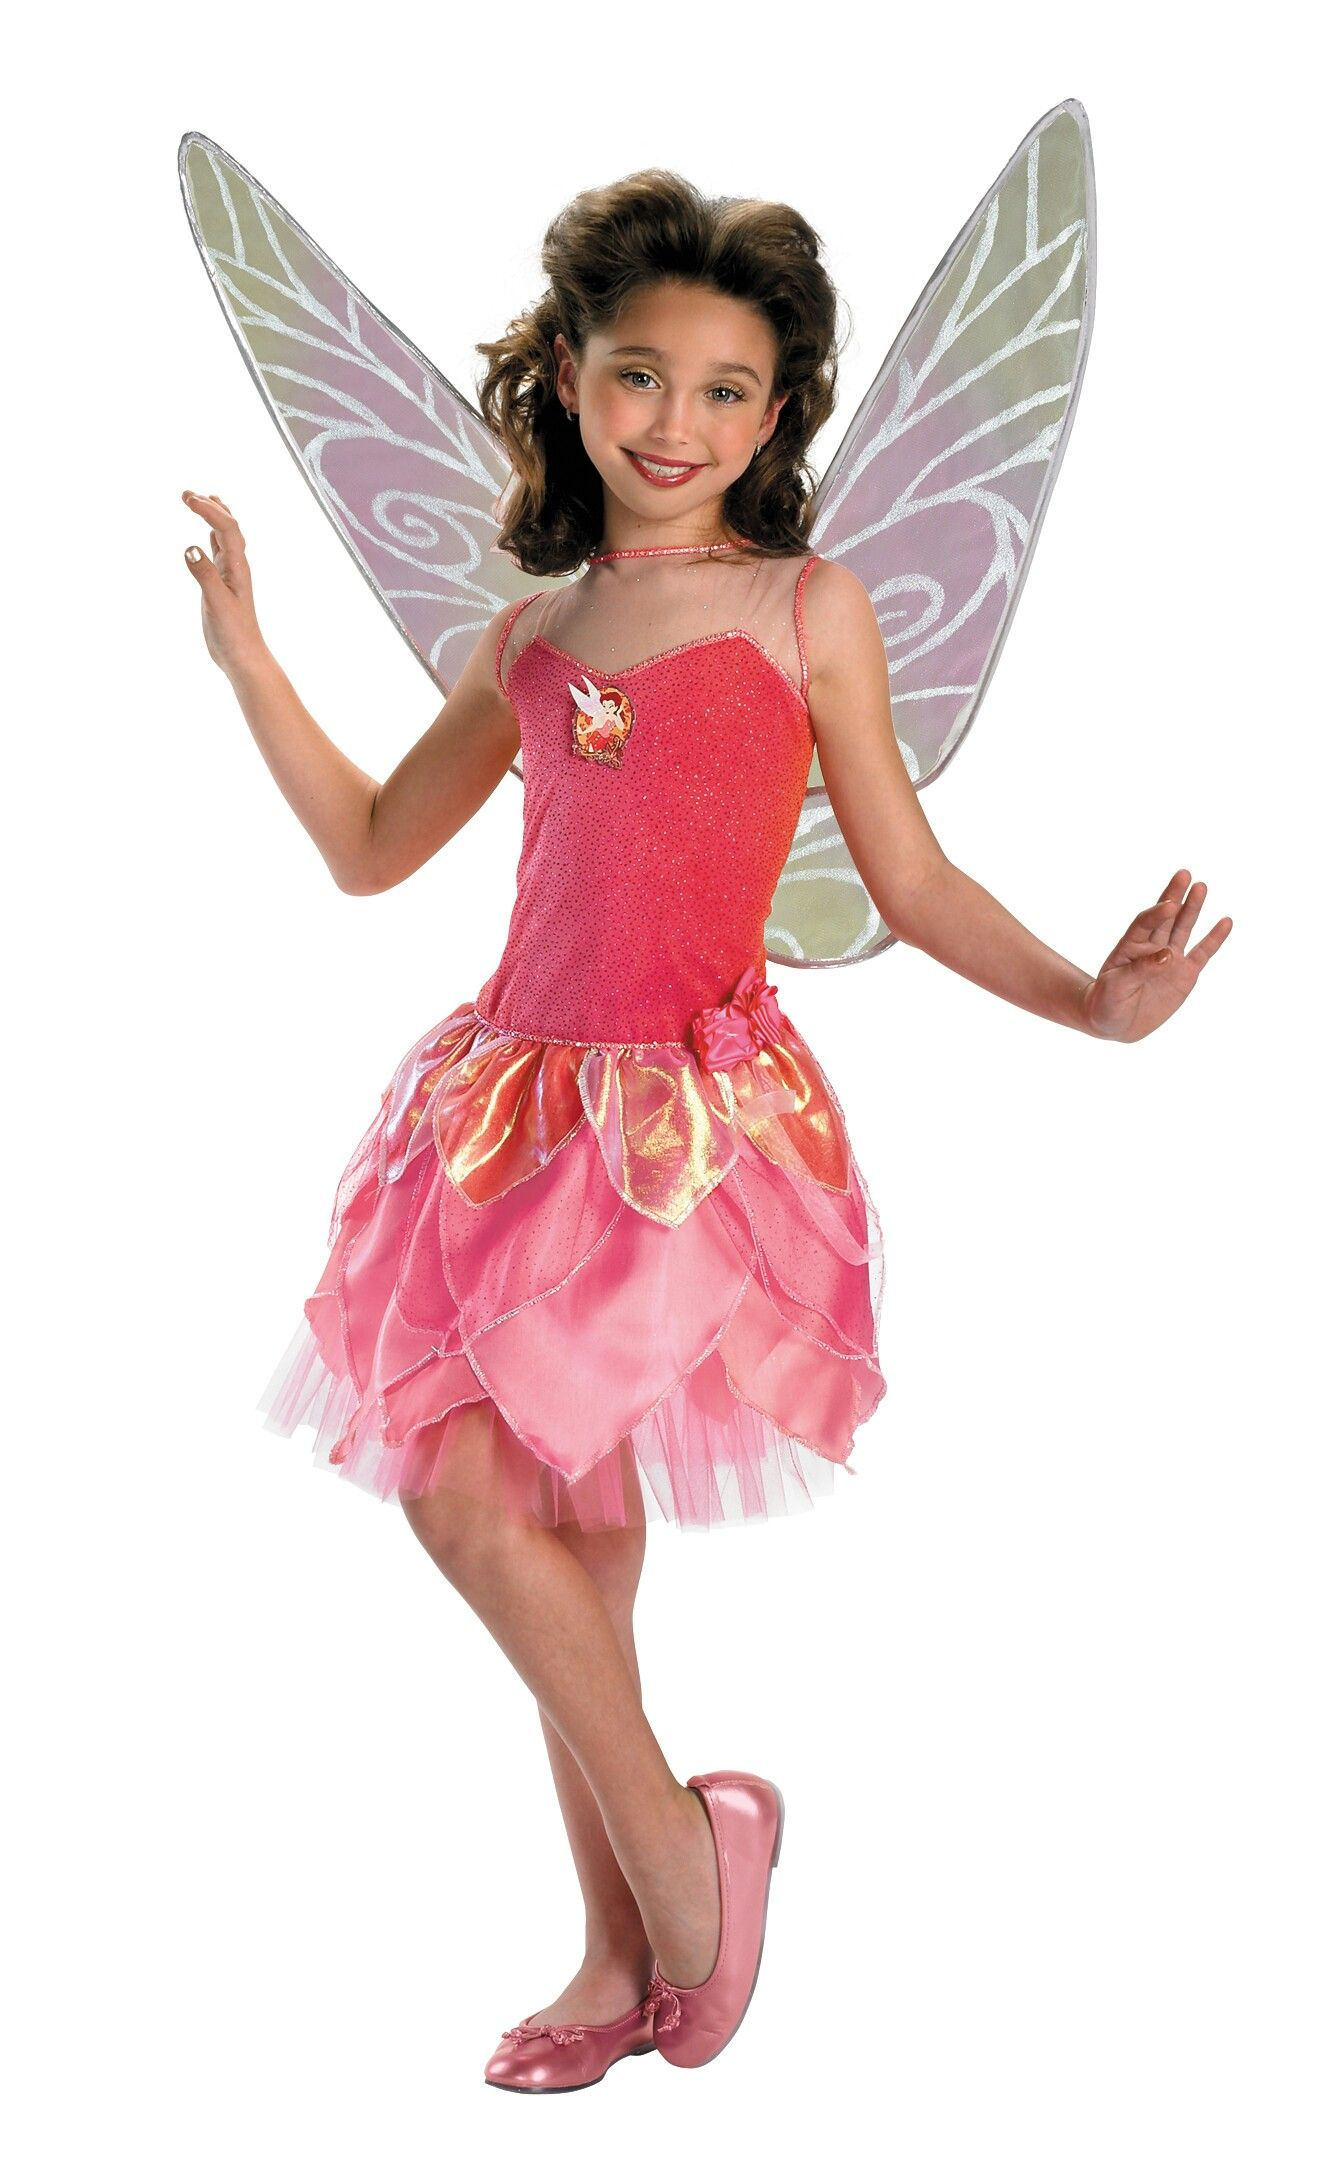 fa89857af Rosetta Fairy, Peter Pan Costumes, Party In A Box, Disney Fairies, Happy